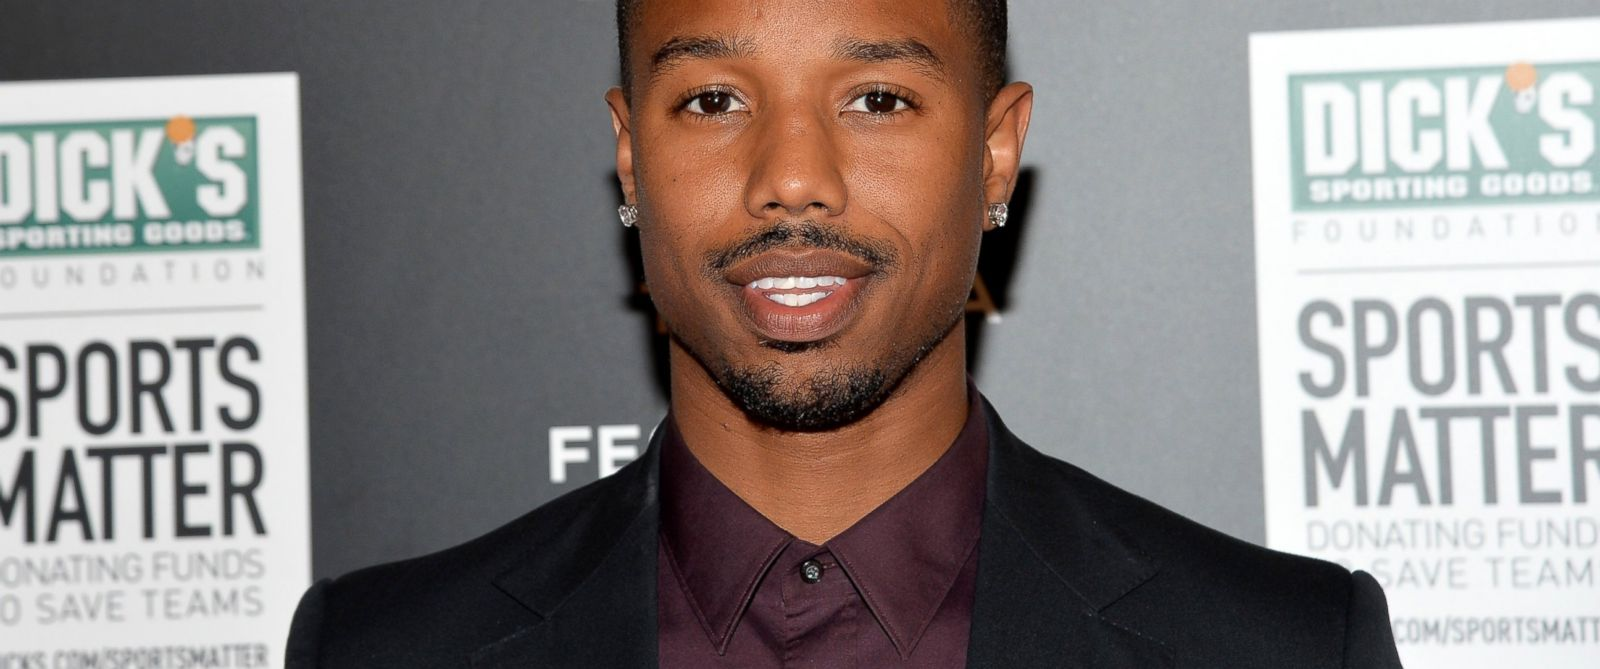 PHOTO: Michael B. Jordan attends a premiere during the 2014 Tribeca Film Festival at Sunshine Landmark, April 23, 2014, in New York.